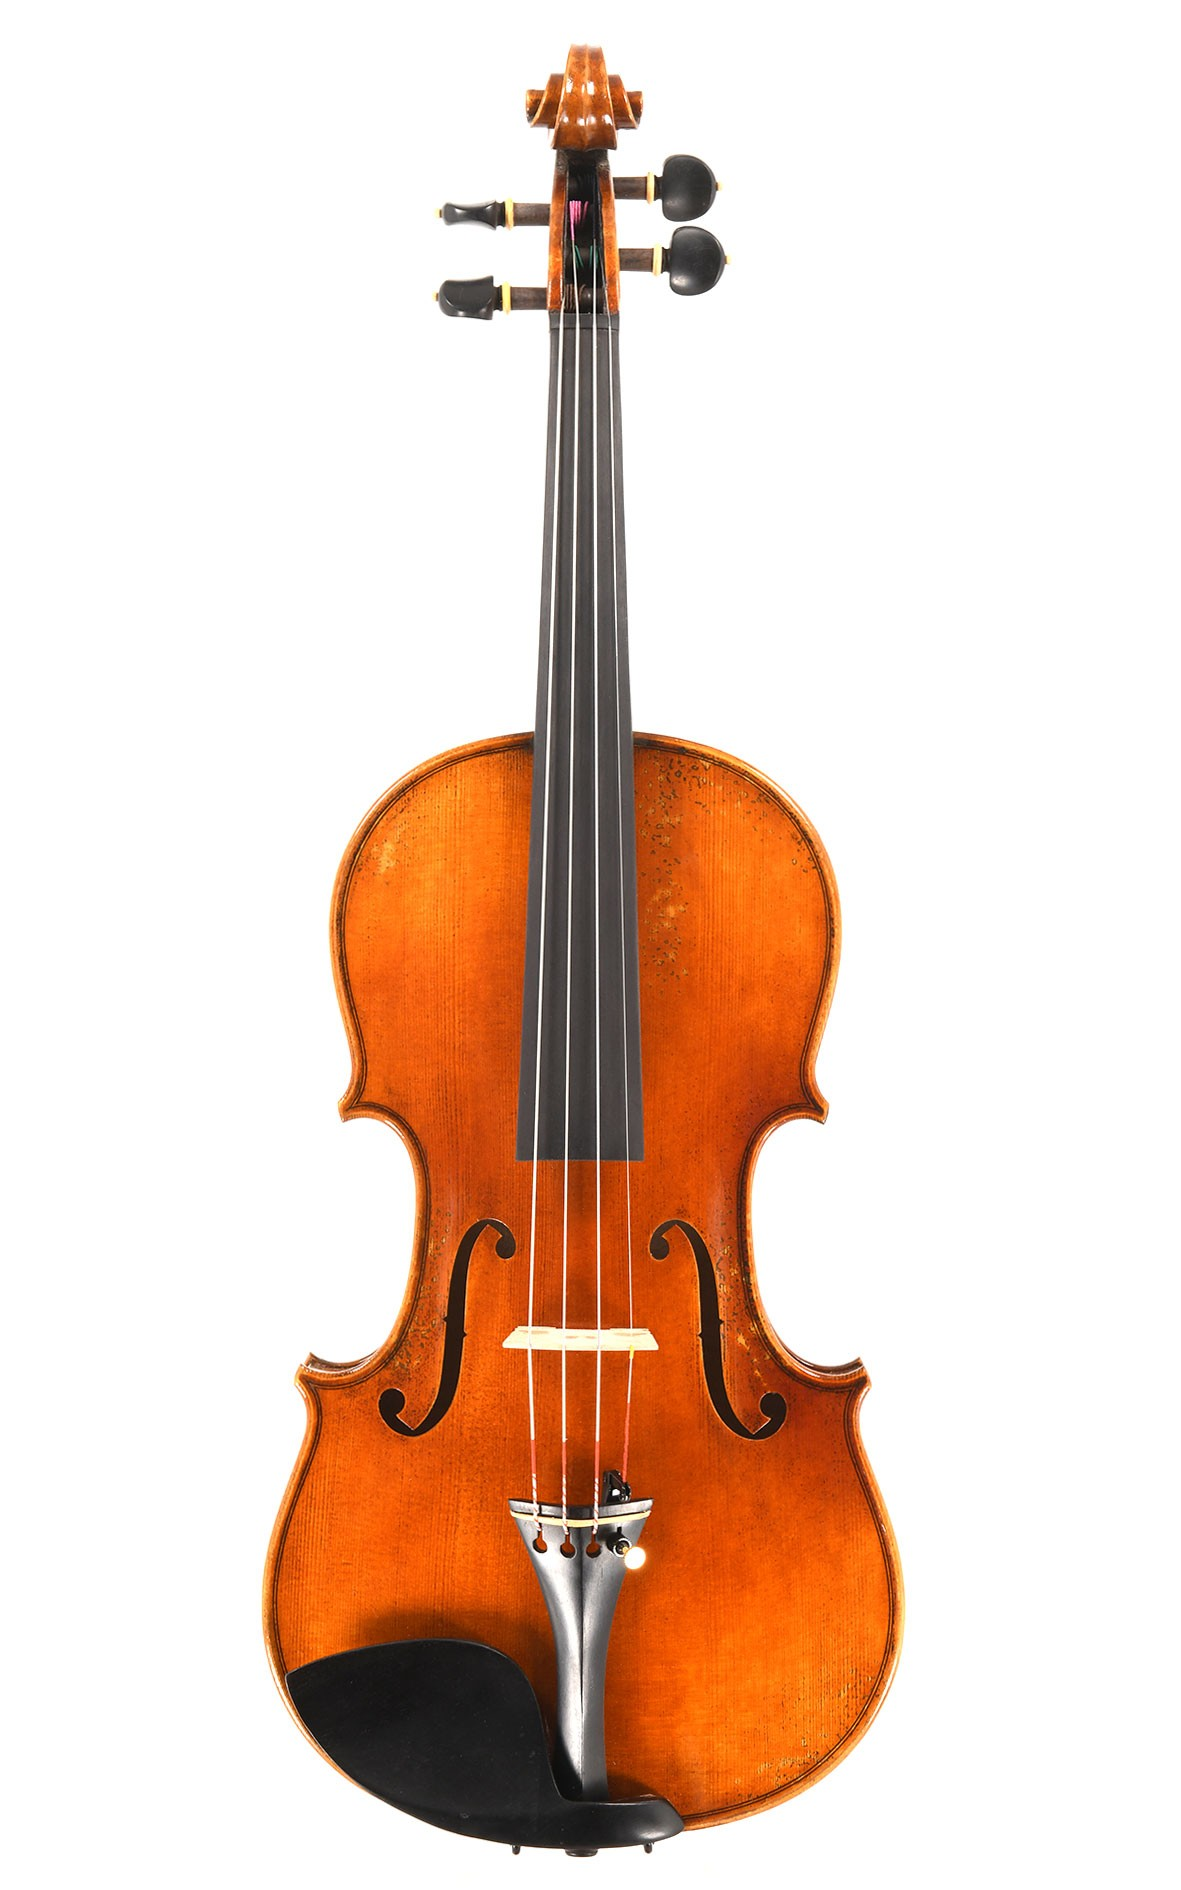 Violin with a great sound from the CV Selectio op. 8 line